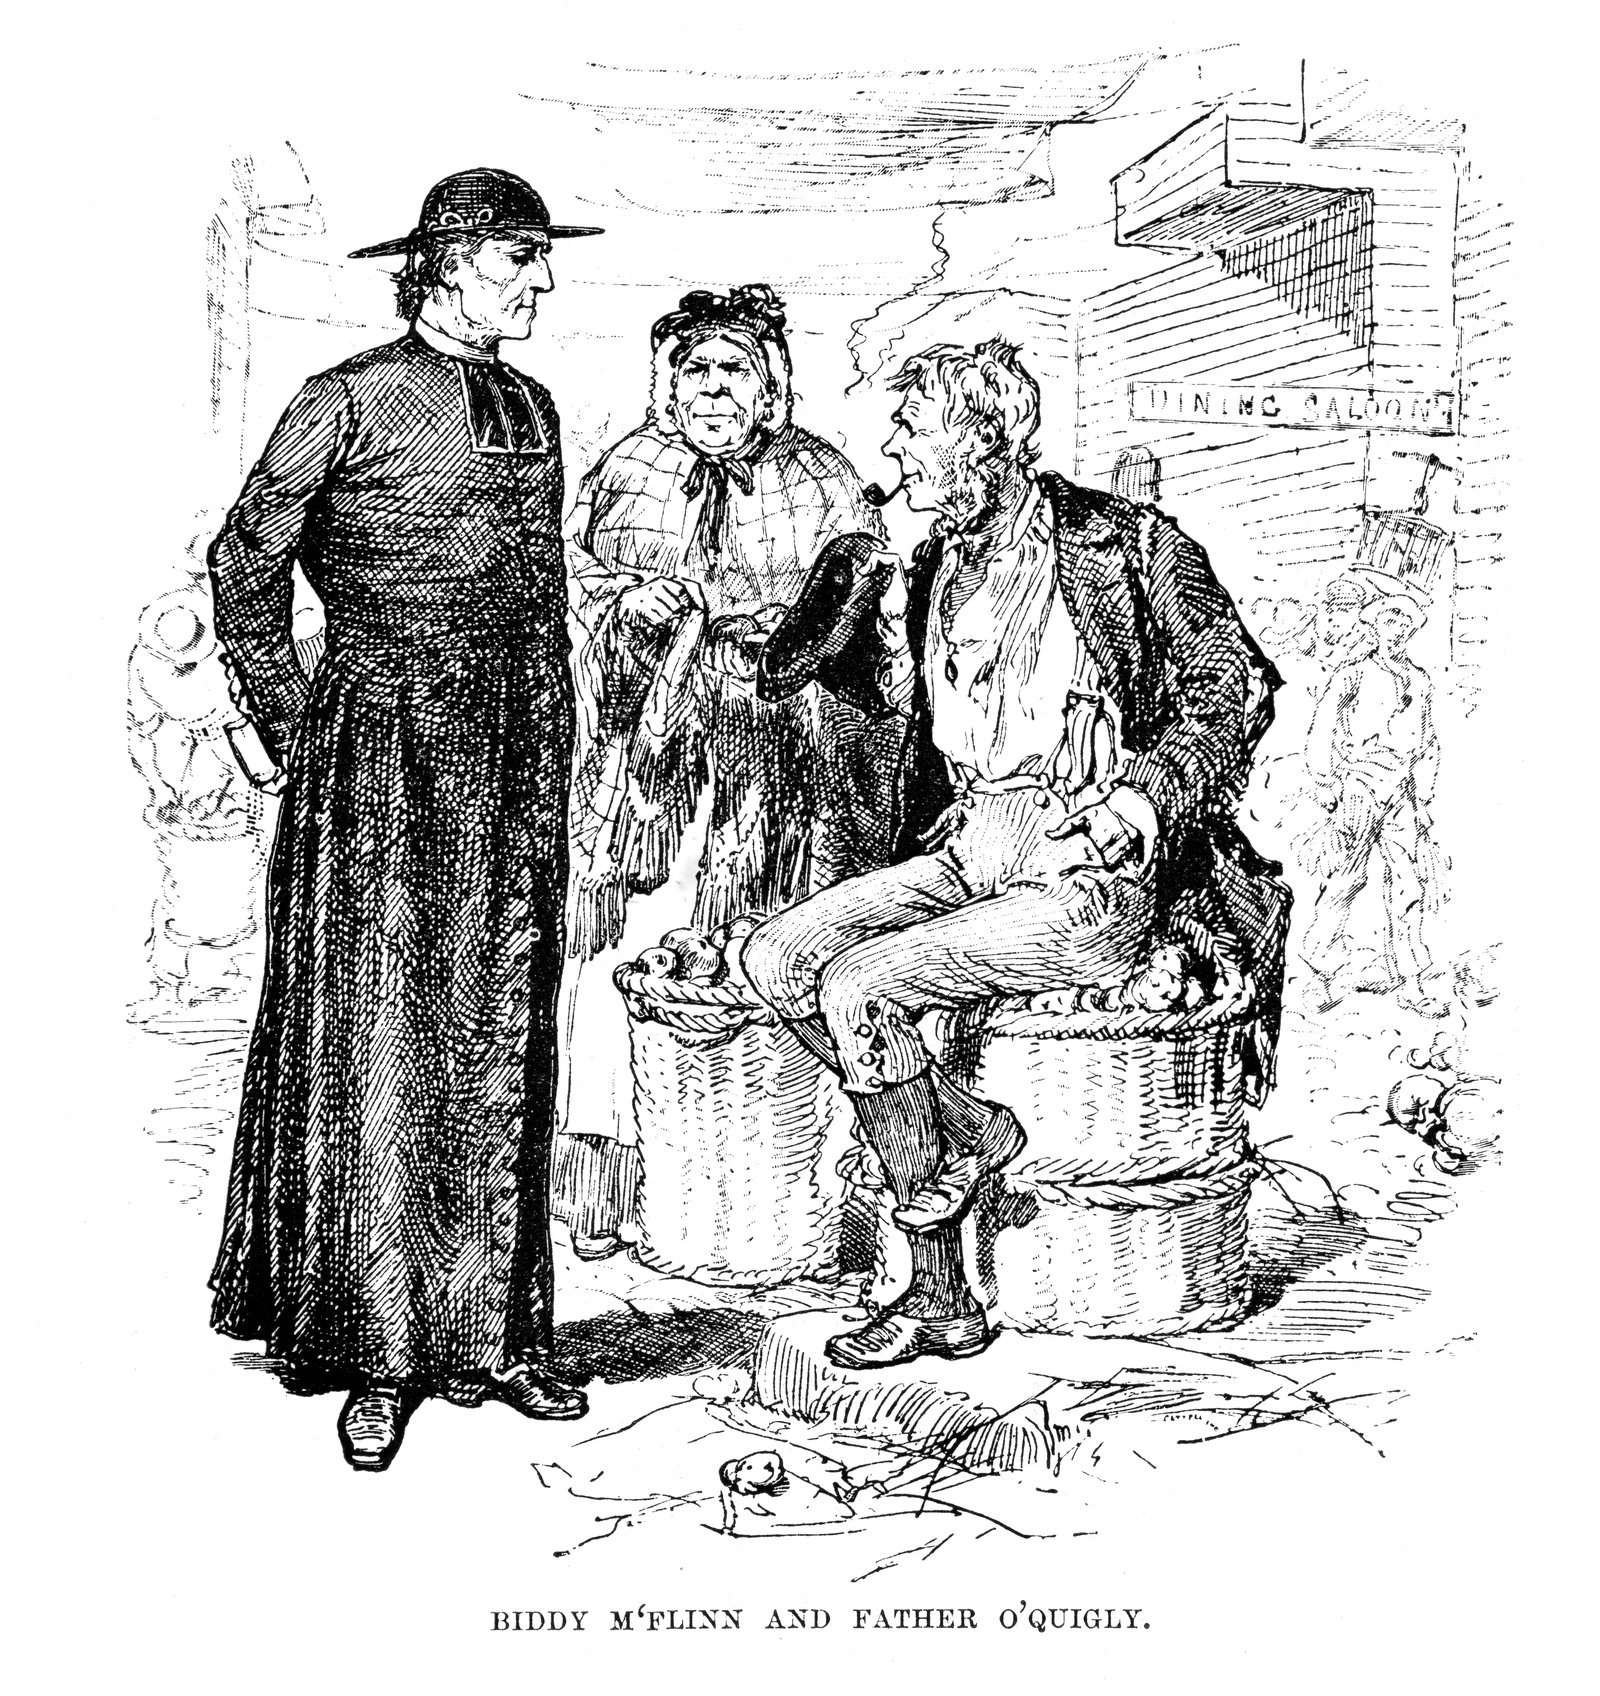 Image - An engraving of fictional Irish immigrants Biddy M'Flinn and Father O'Quigly, New York. 1882. Source: Getty Images